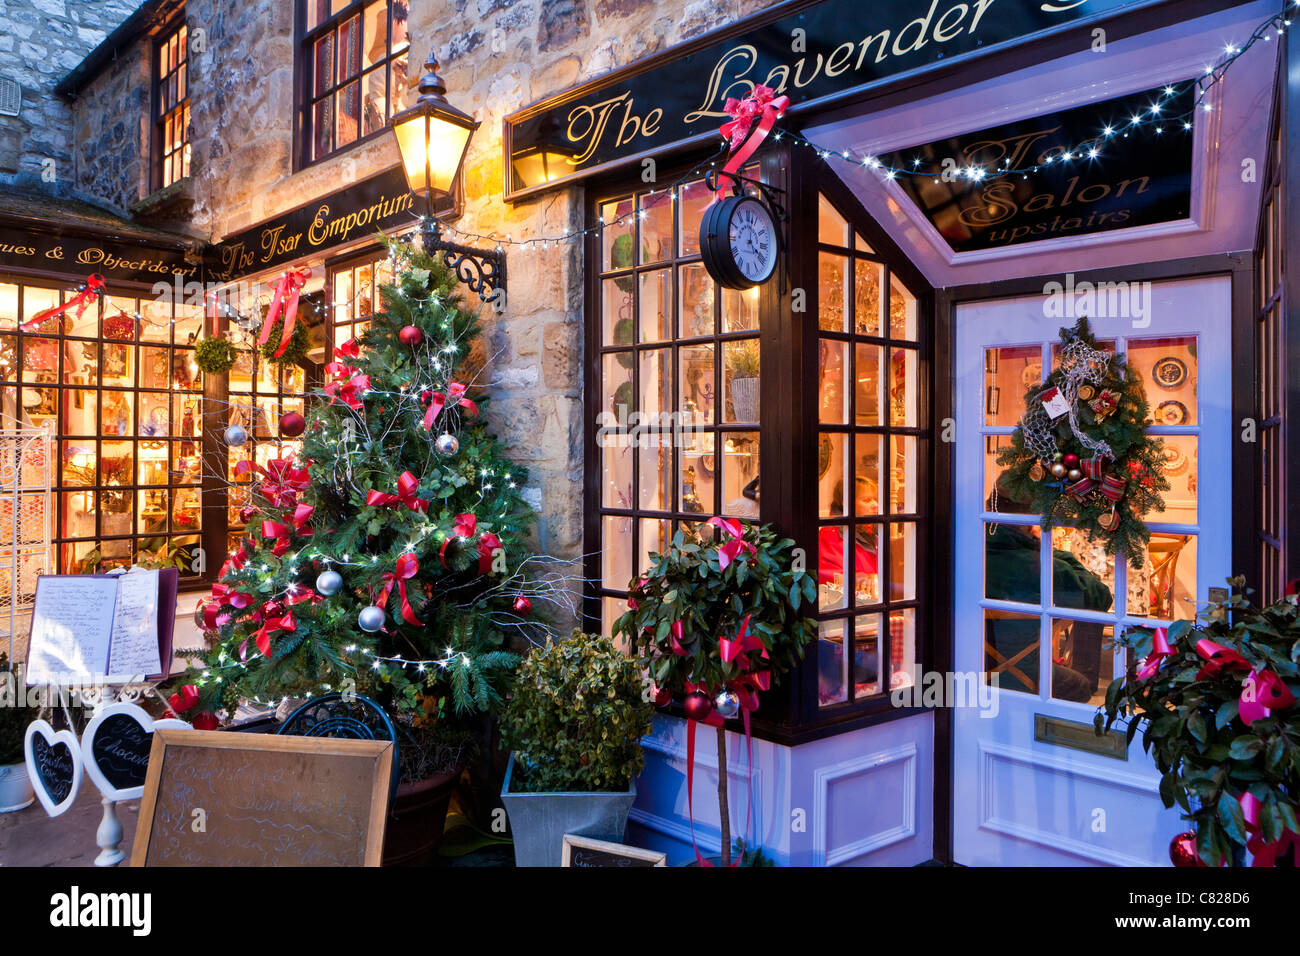 Christmas In England.Shops Decorated For Christmas Bakewell Derbyshire England